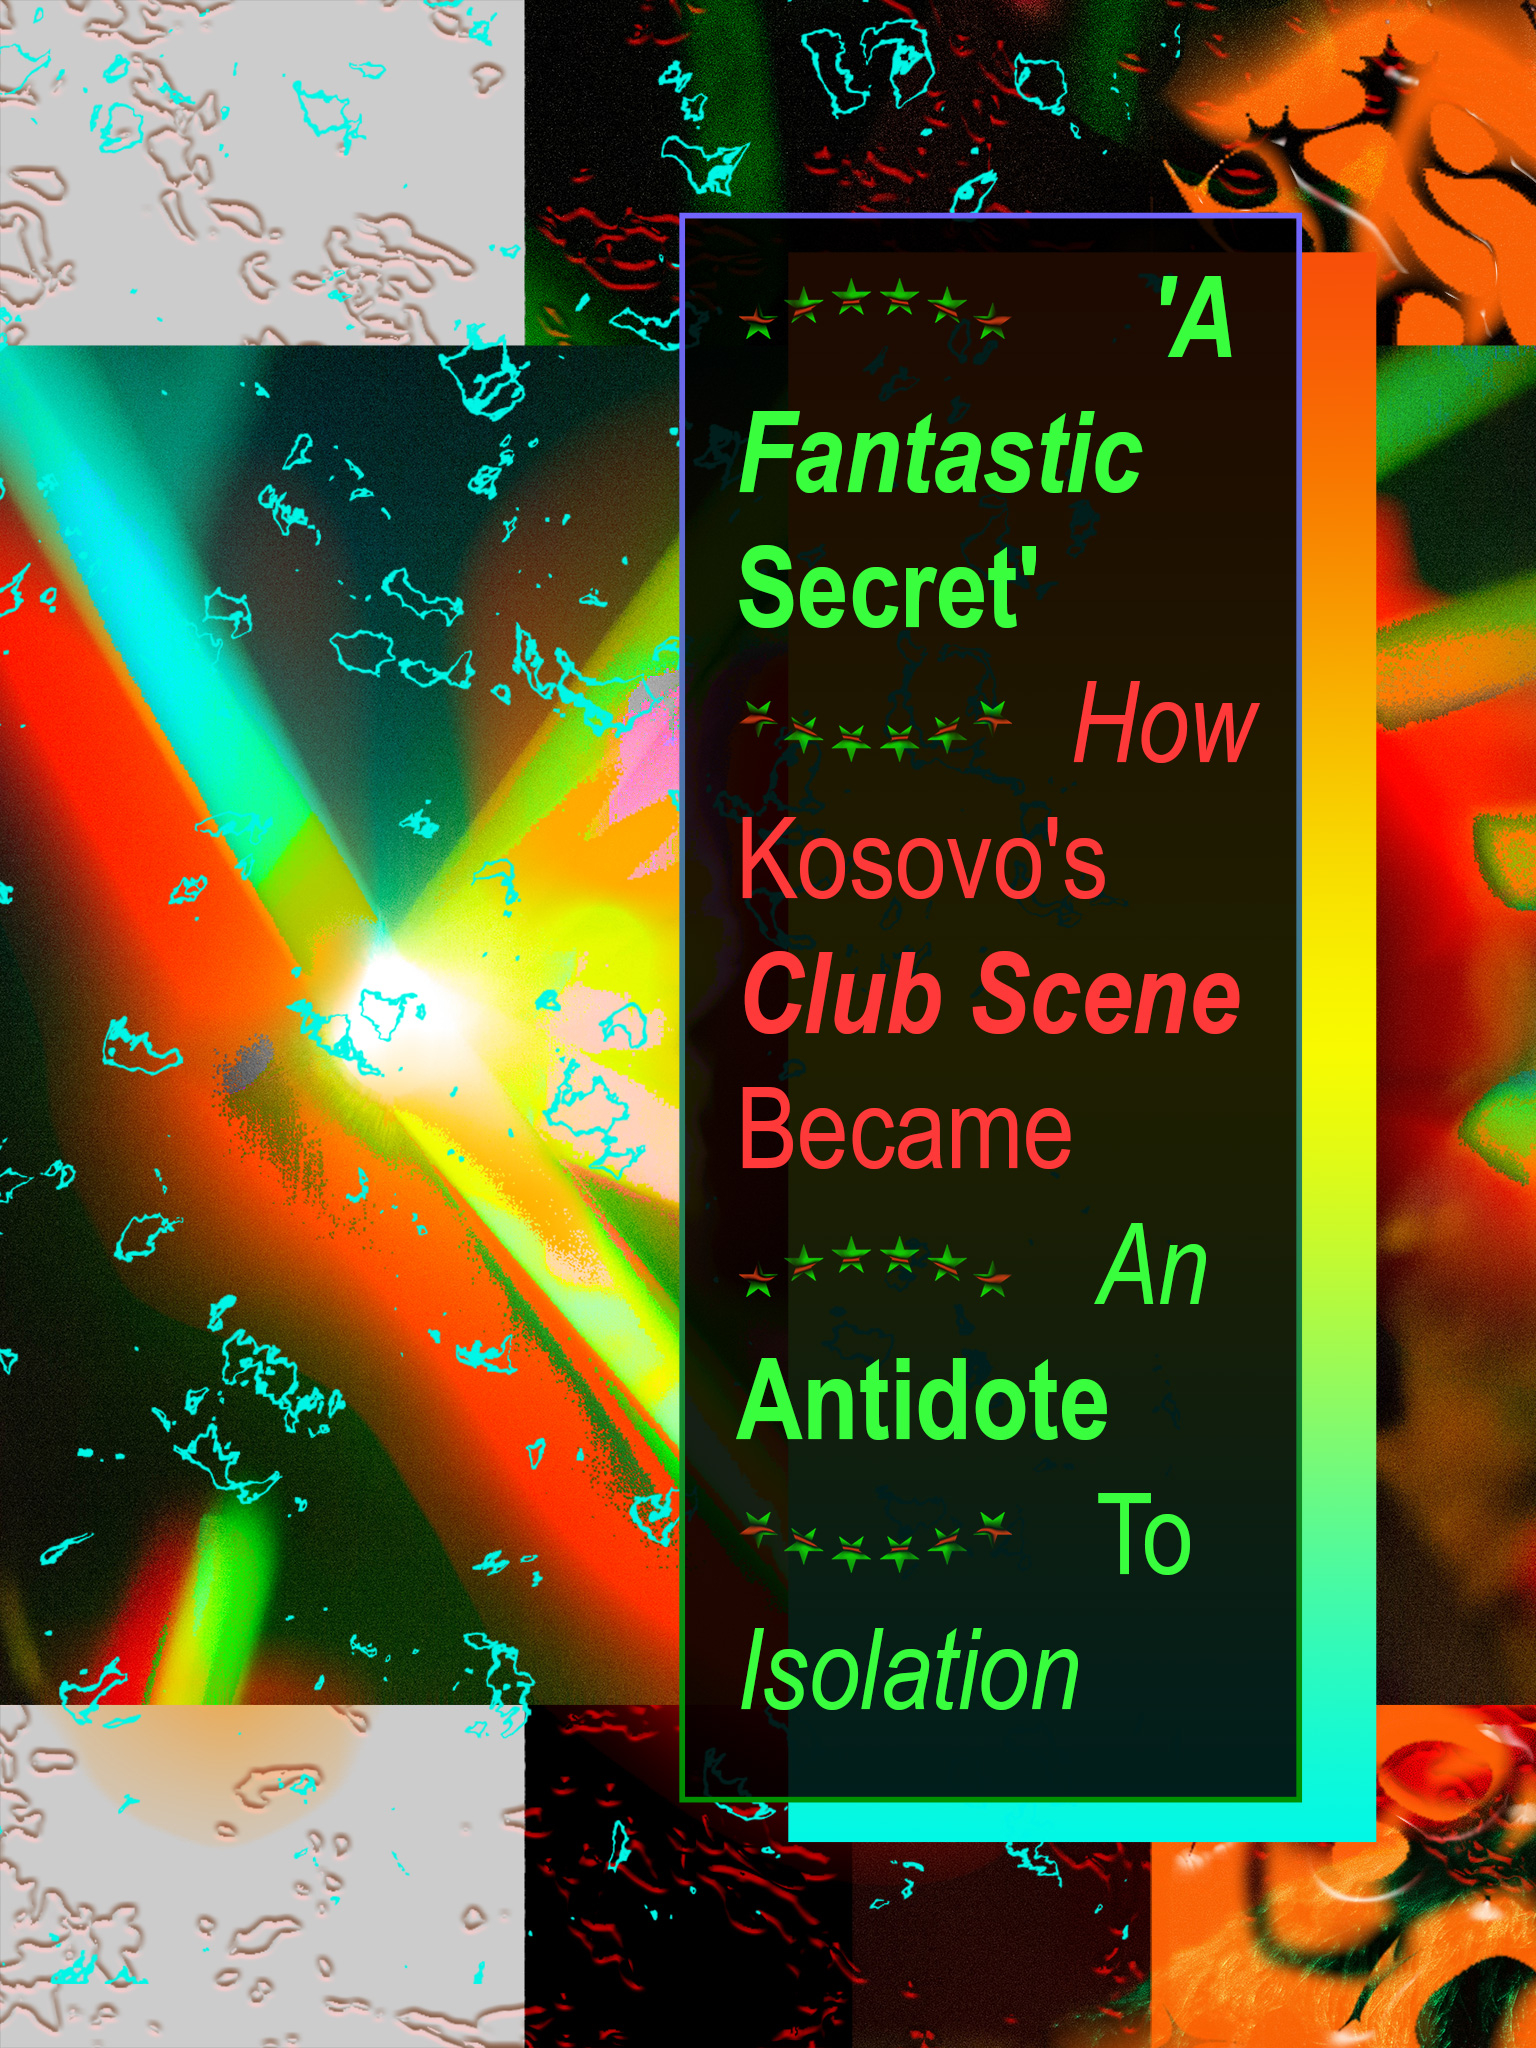 'A Fantastic Secret': How Kosovo's Club Scene Became An Antidote To Isolation